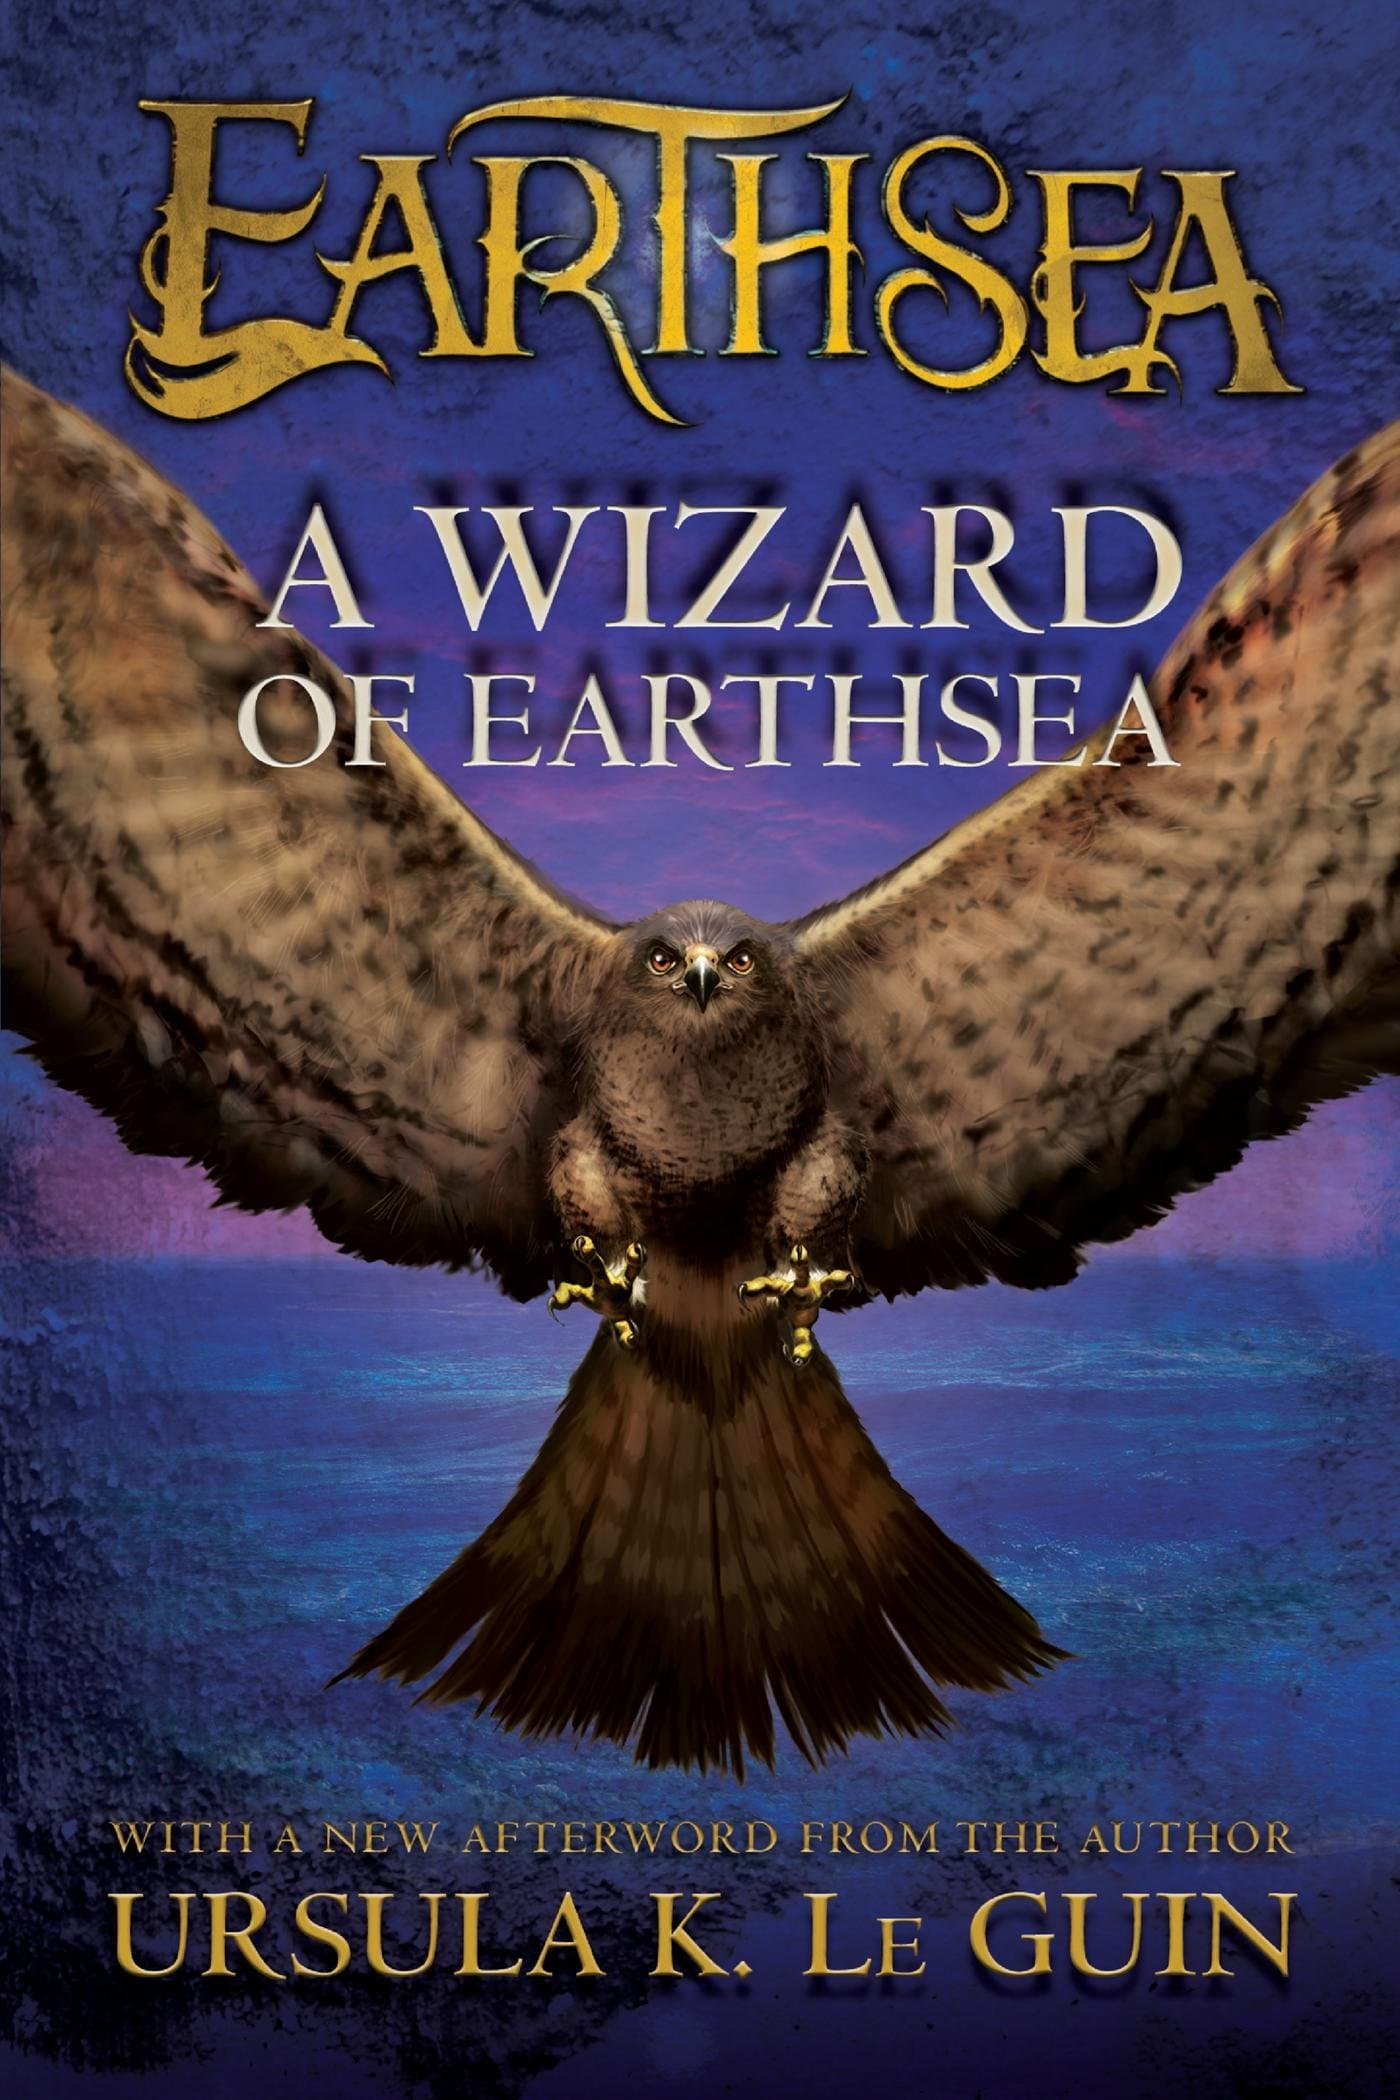 The cover of A Wizard of Earthsea